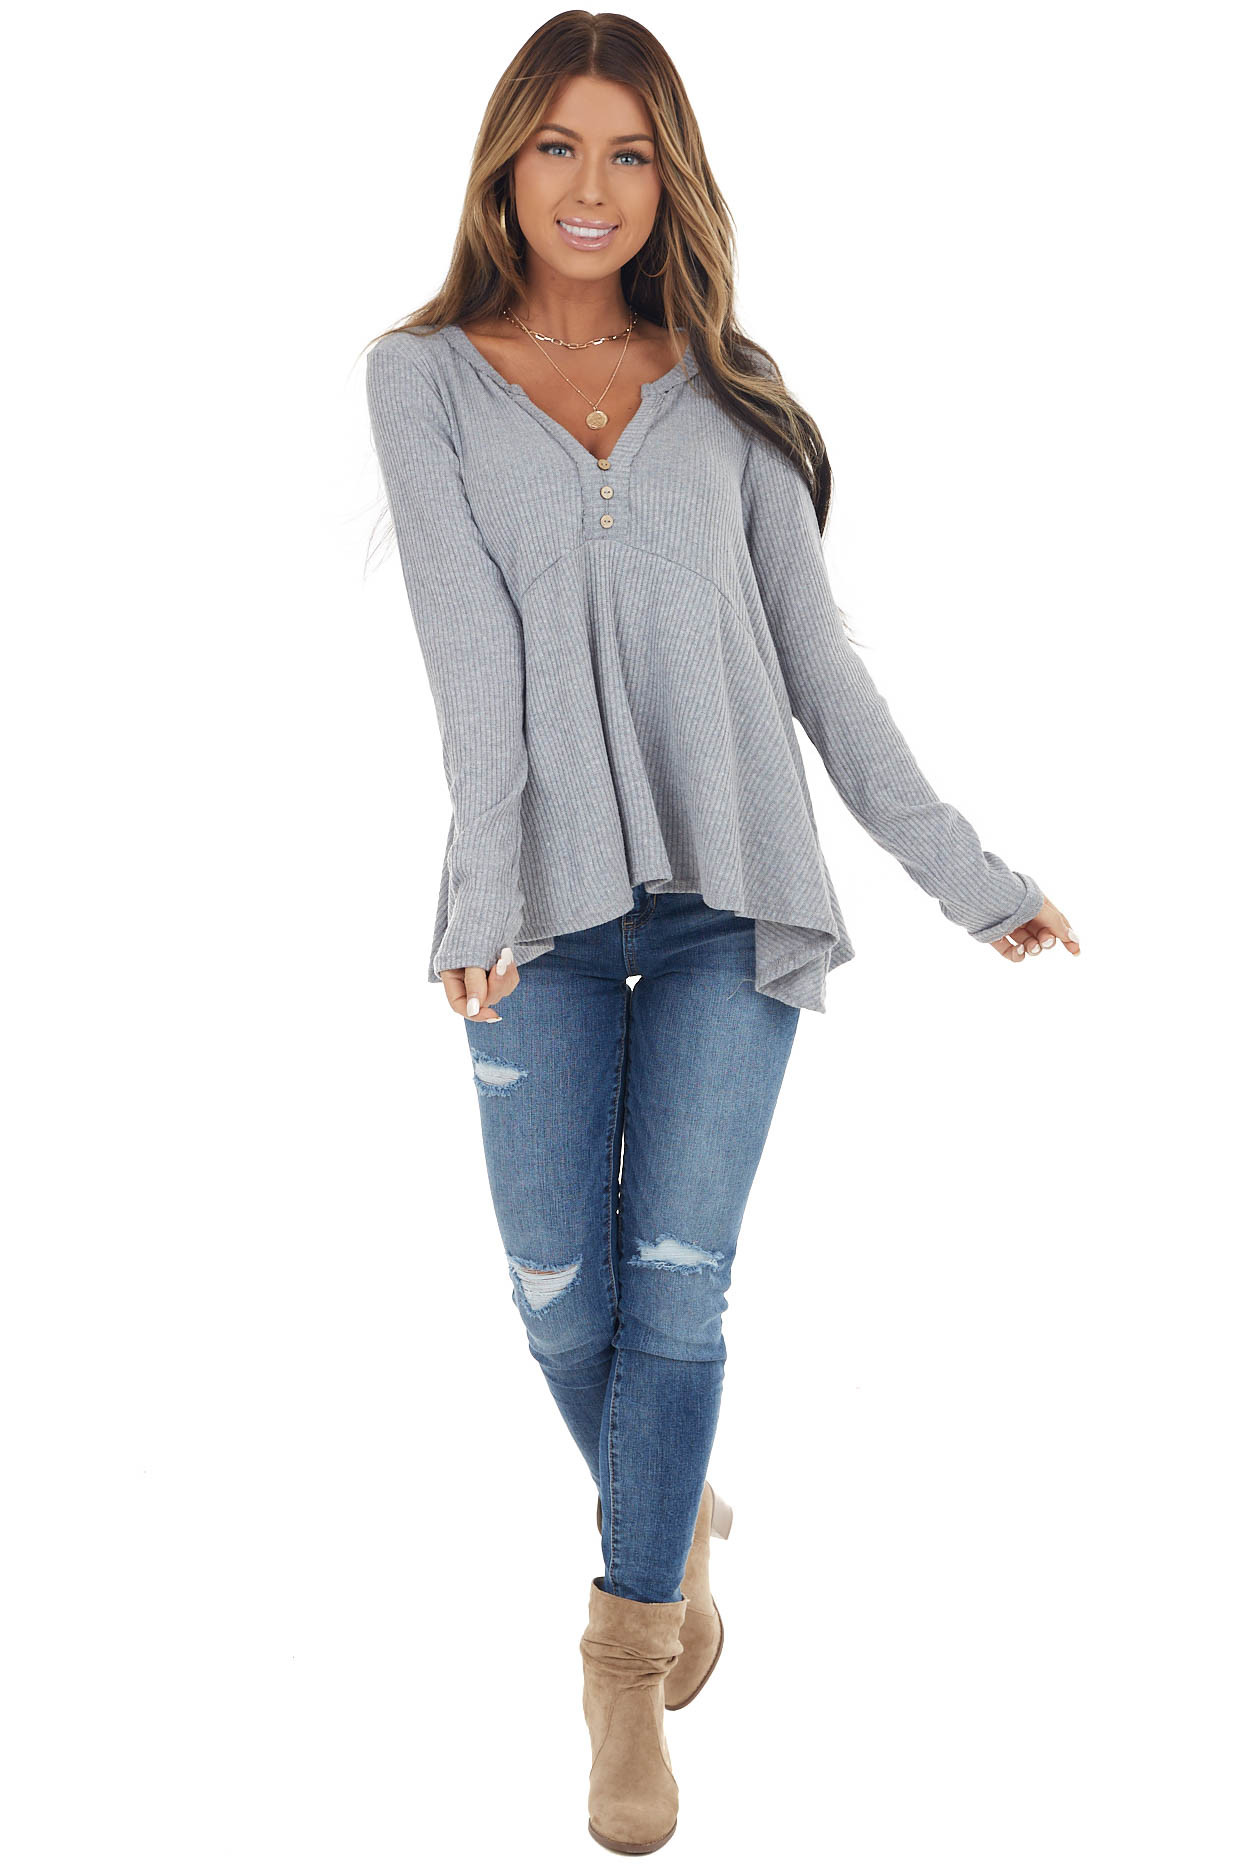 Dove Grey Notch Neck Babydoll Knit Top with Button Detail